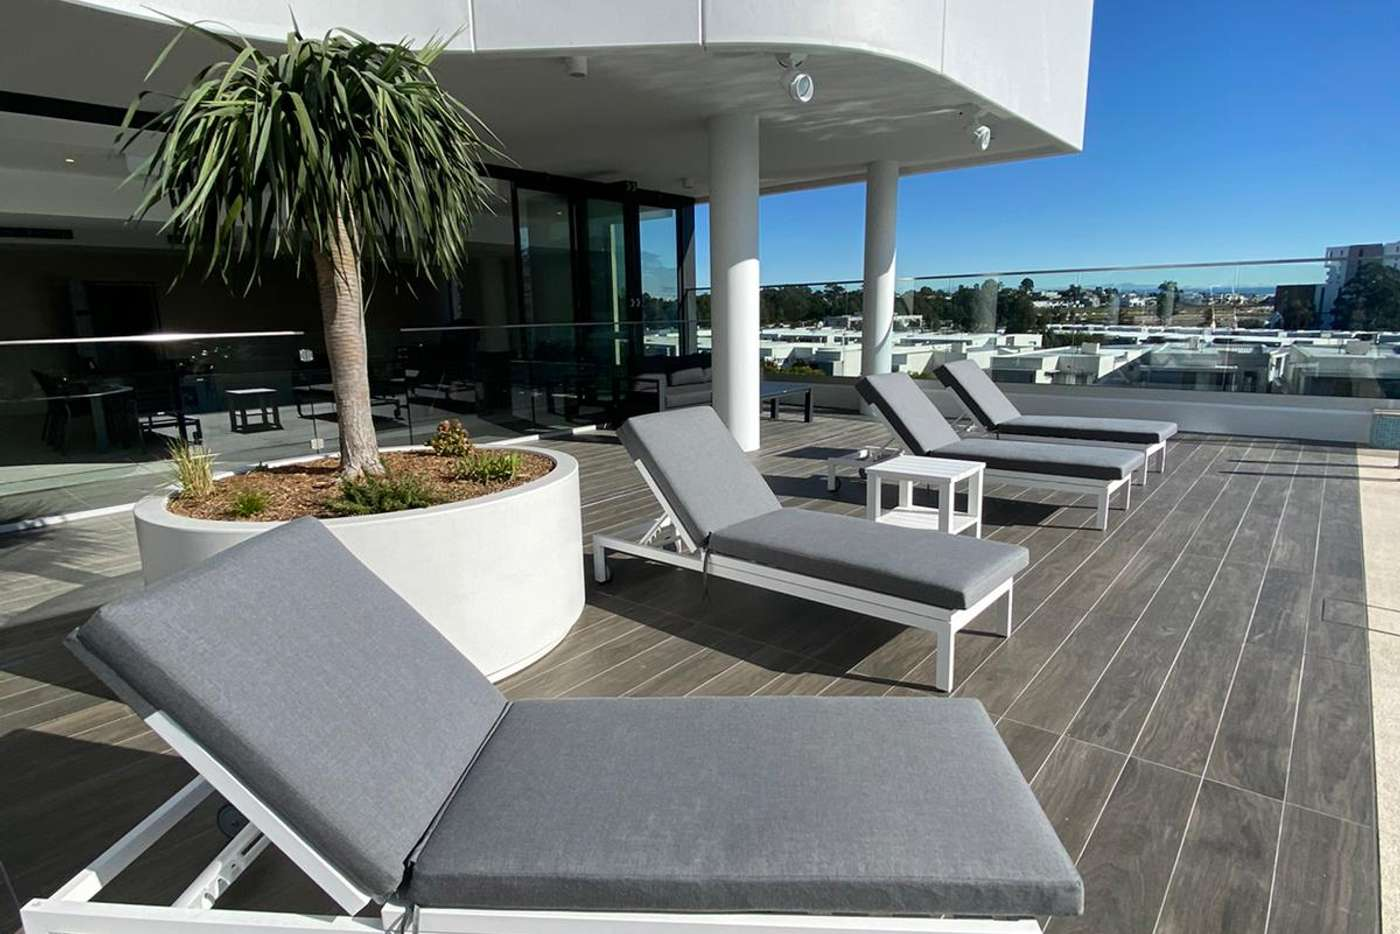 Main view of Homely apartment listing, 1016/11 Solent Circuit, Norwest NSW 2153